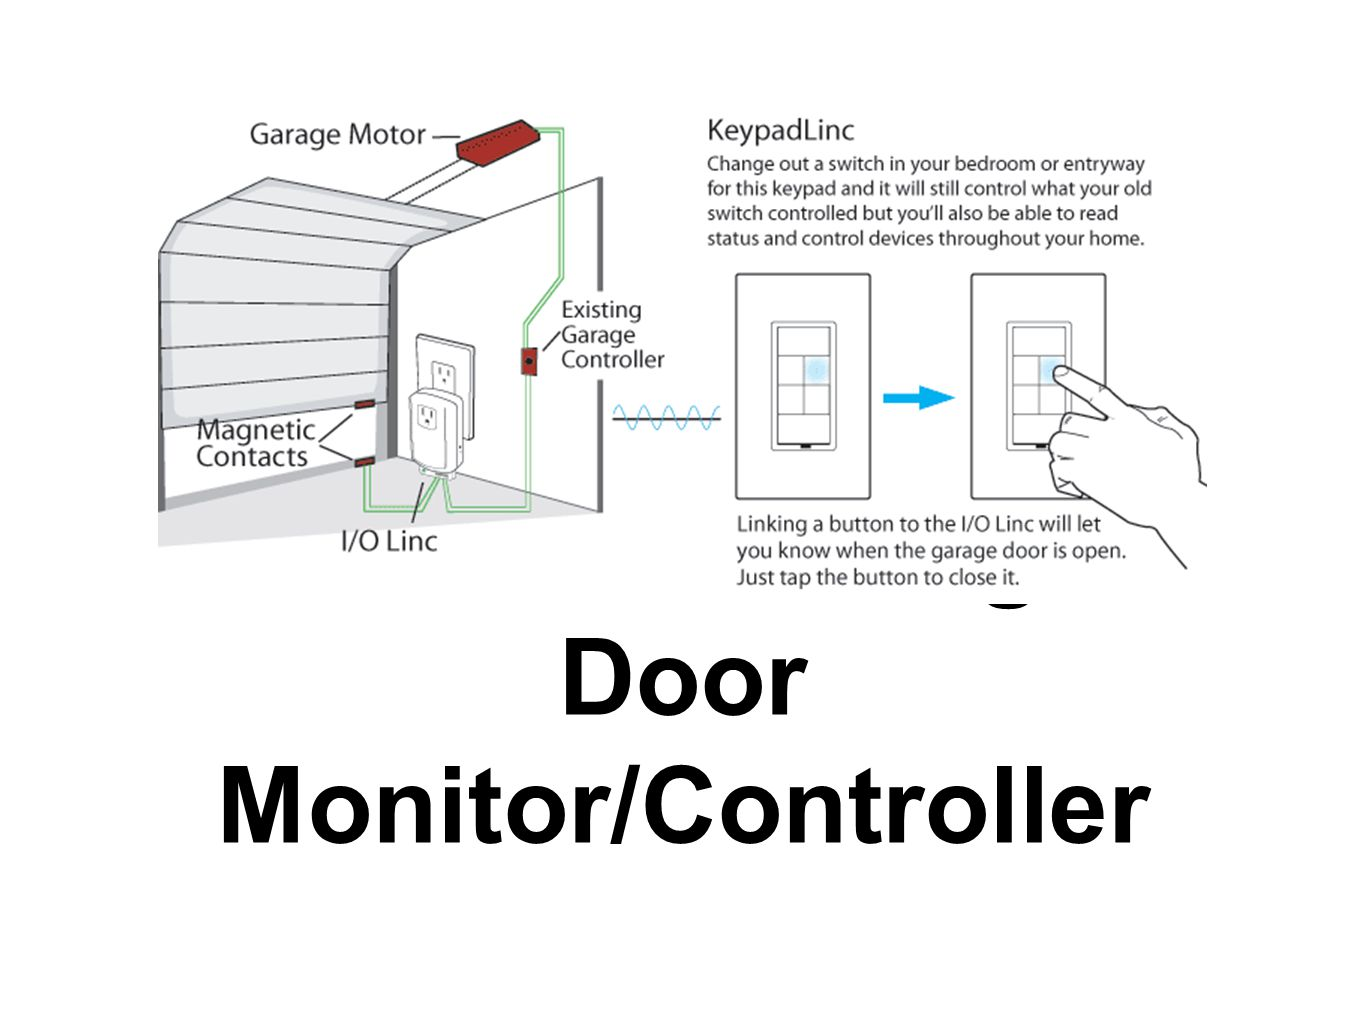 Wireless Garage Door Monitor/Controller